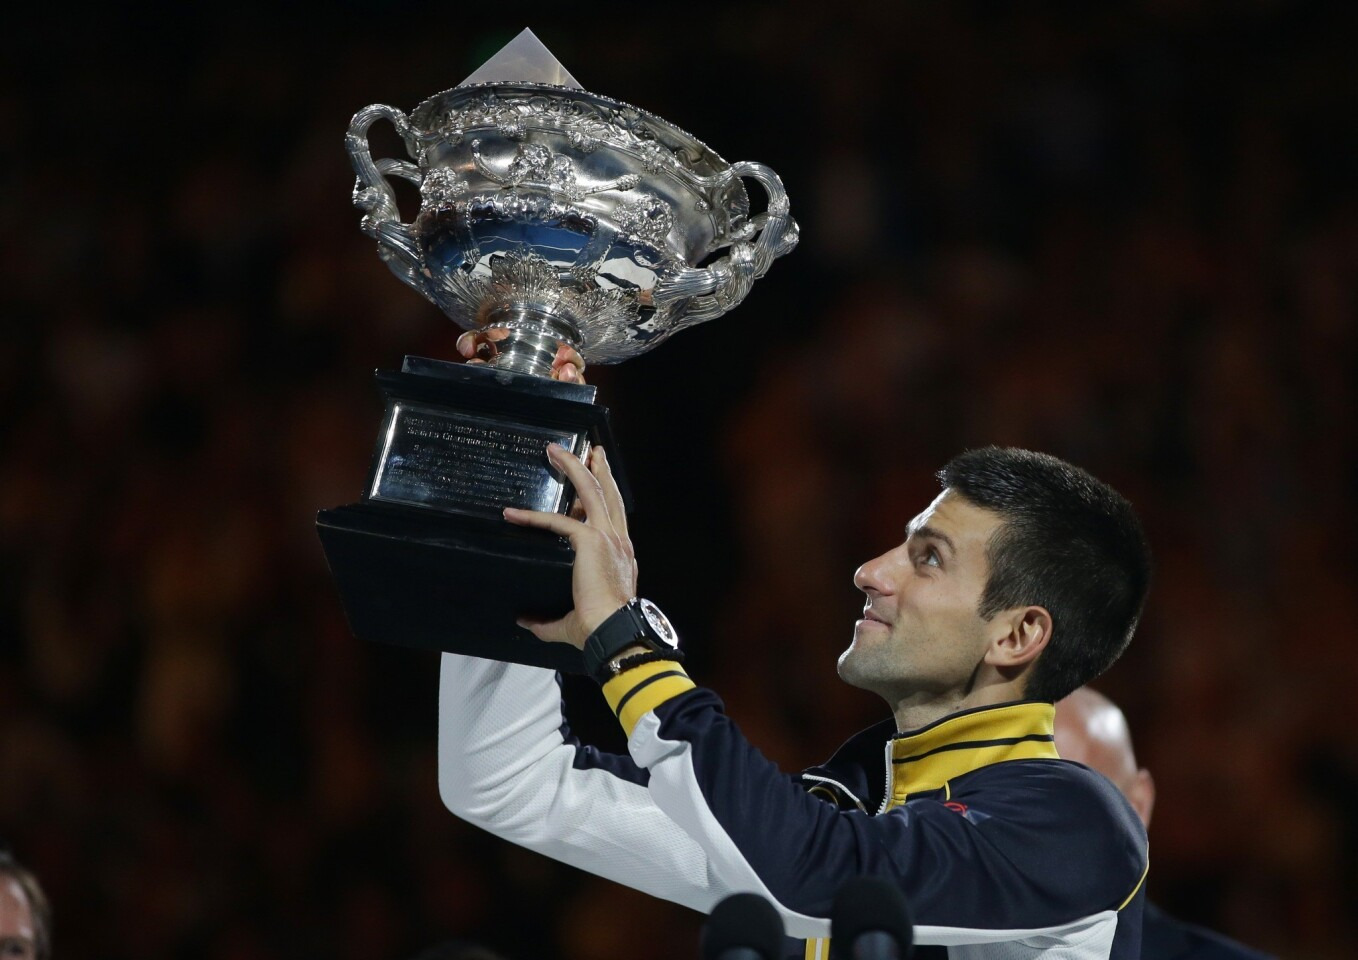 Novak Djokovic becomes the first player in the Open era to hold aloft the Australian Open trophy for the third consecutive year.